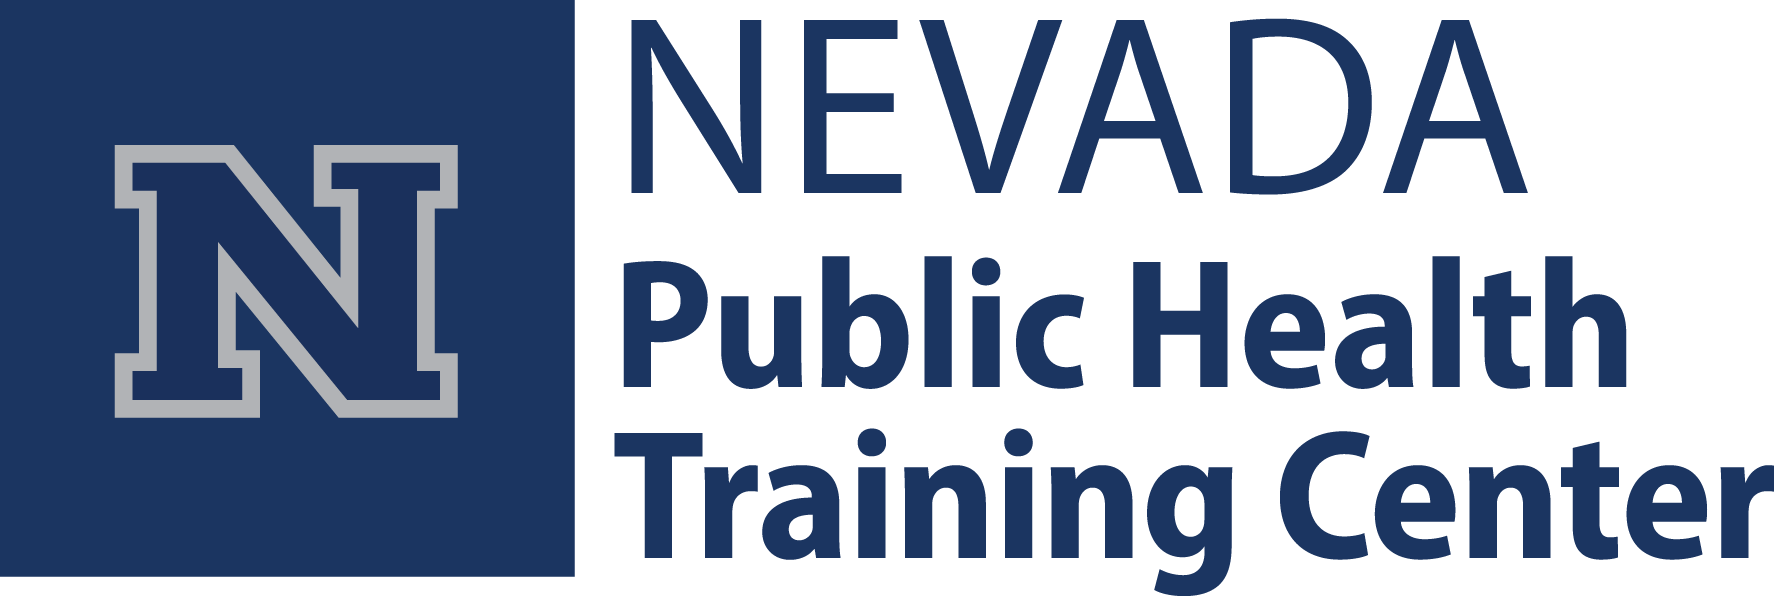 Nevada Public Health Training Center Logo